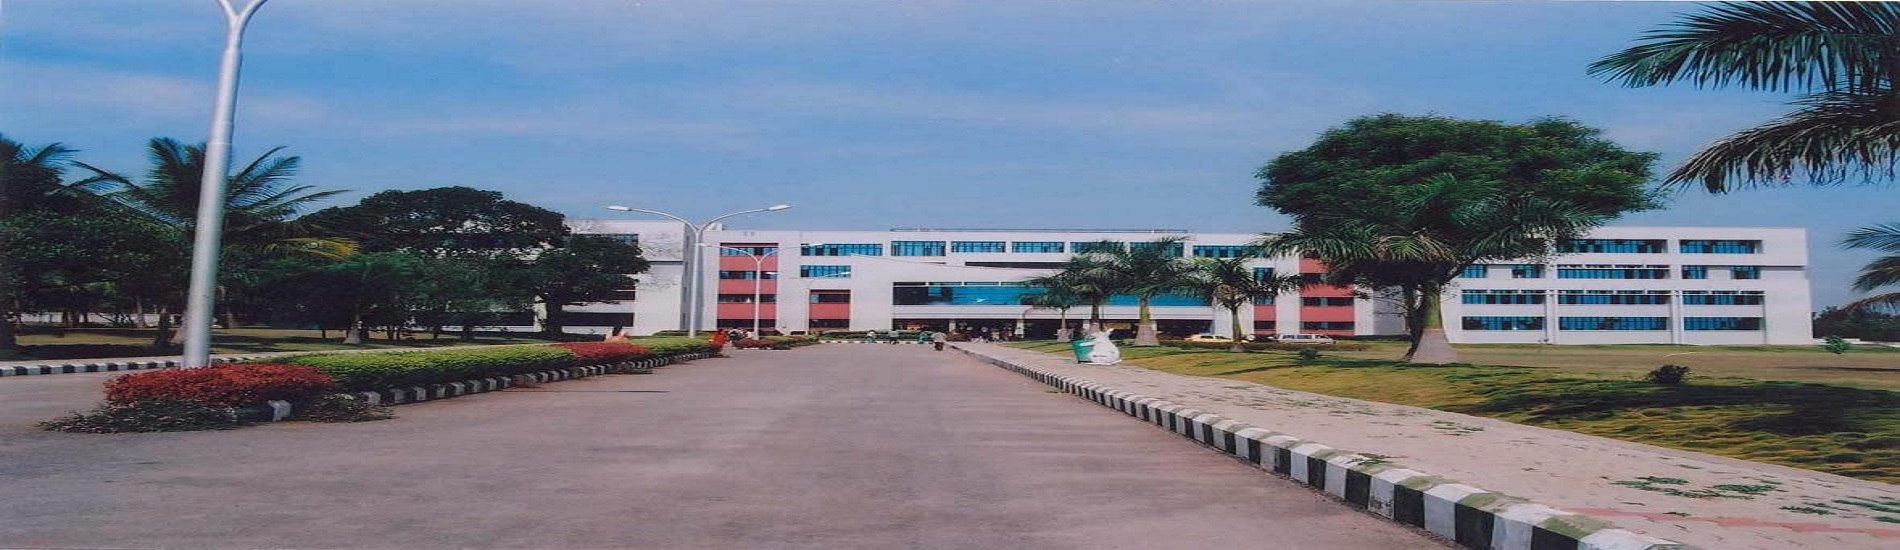 direct-aerospace-engineering-admission-in-bms-college-engineering-in-bangalore-bmsce